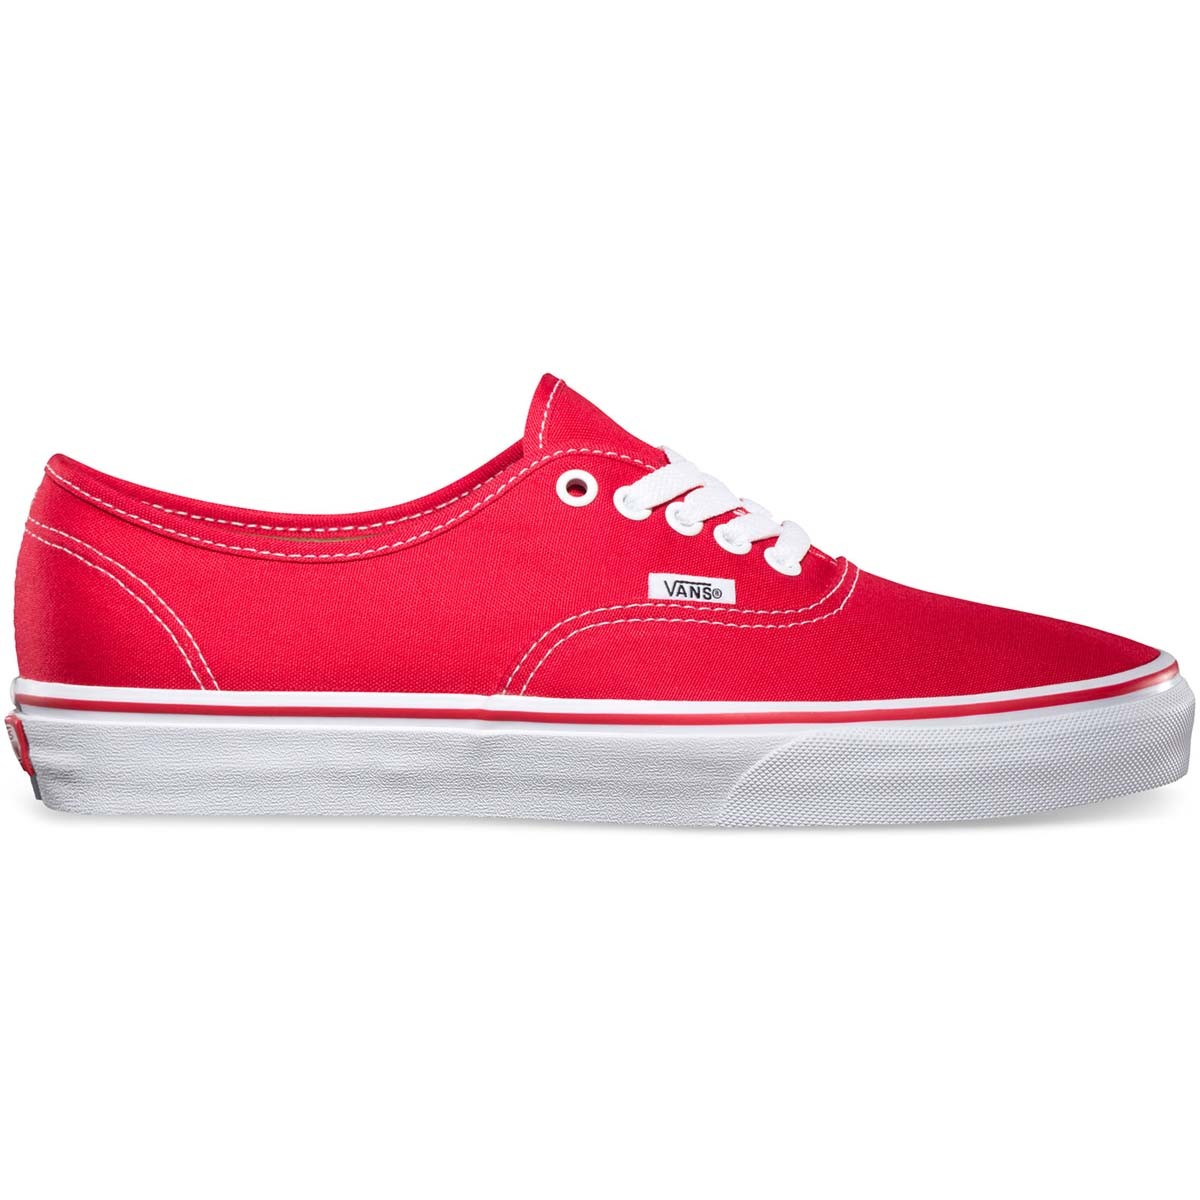 vans original authentic shoes $ 44 95 select color select size size